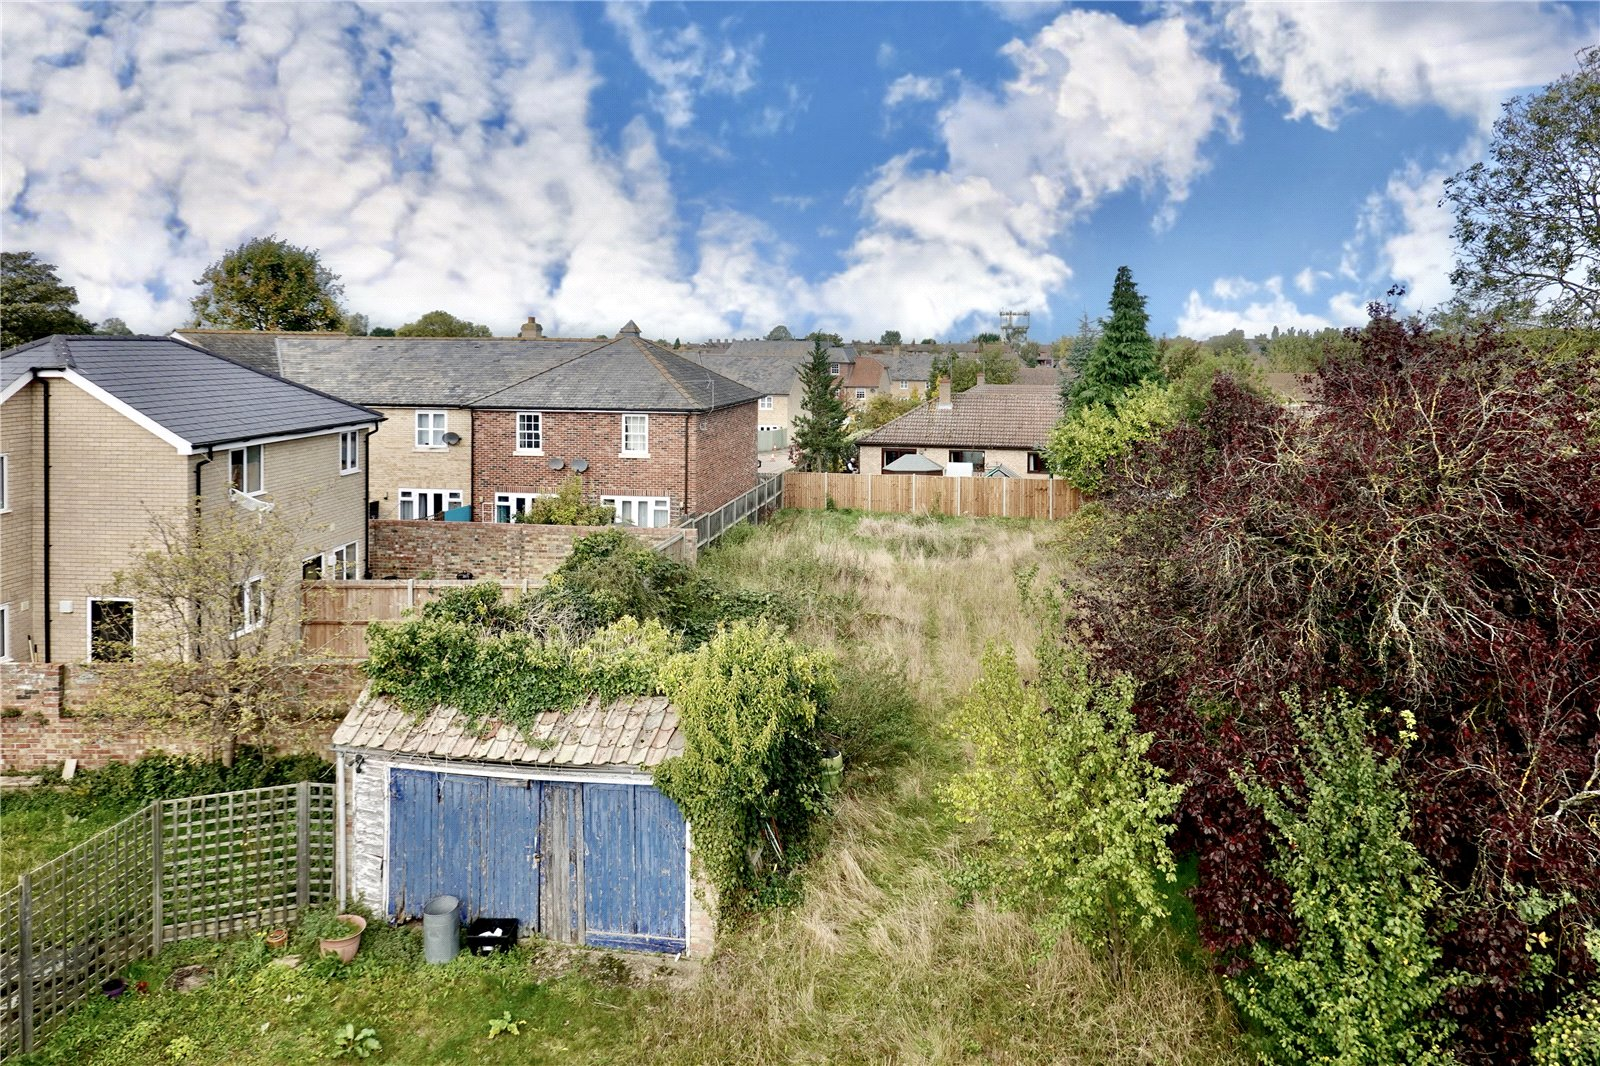 Land (residential) for sale in Sutton, CB6 2RB  - Property Image 7